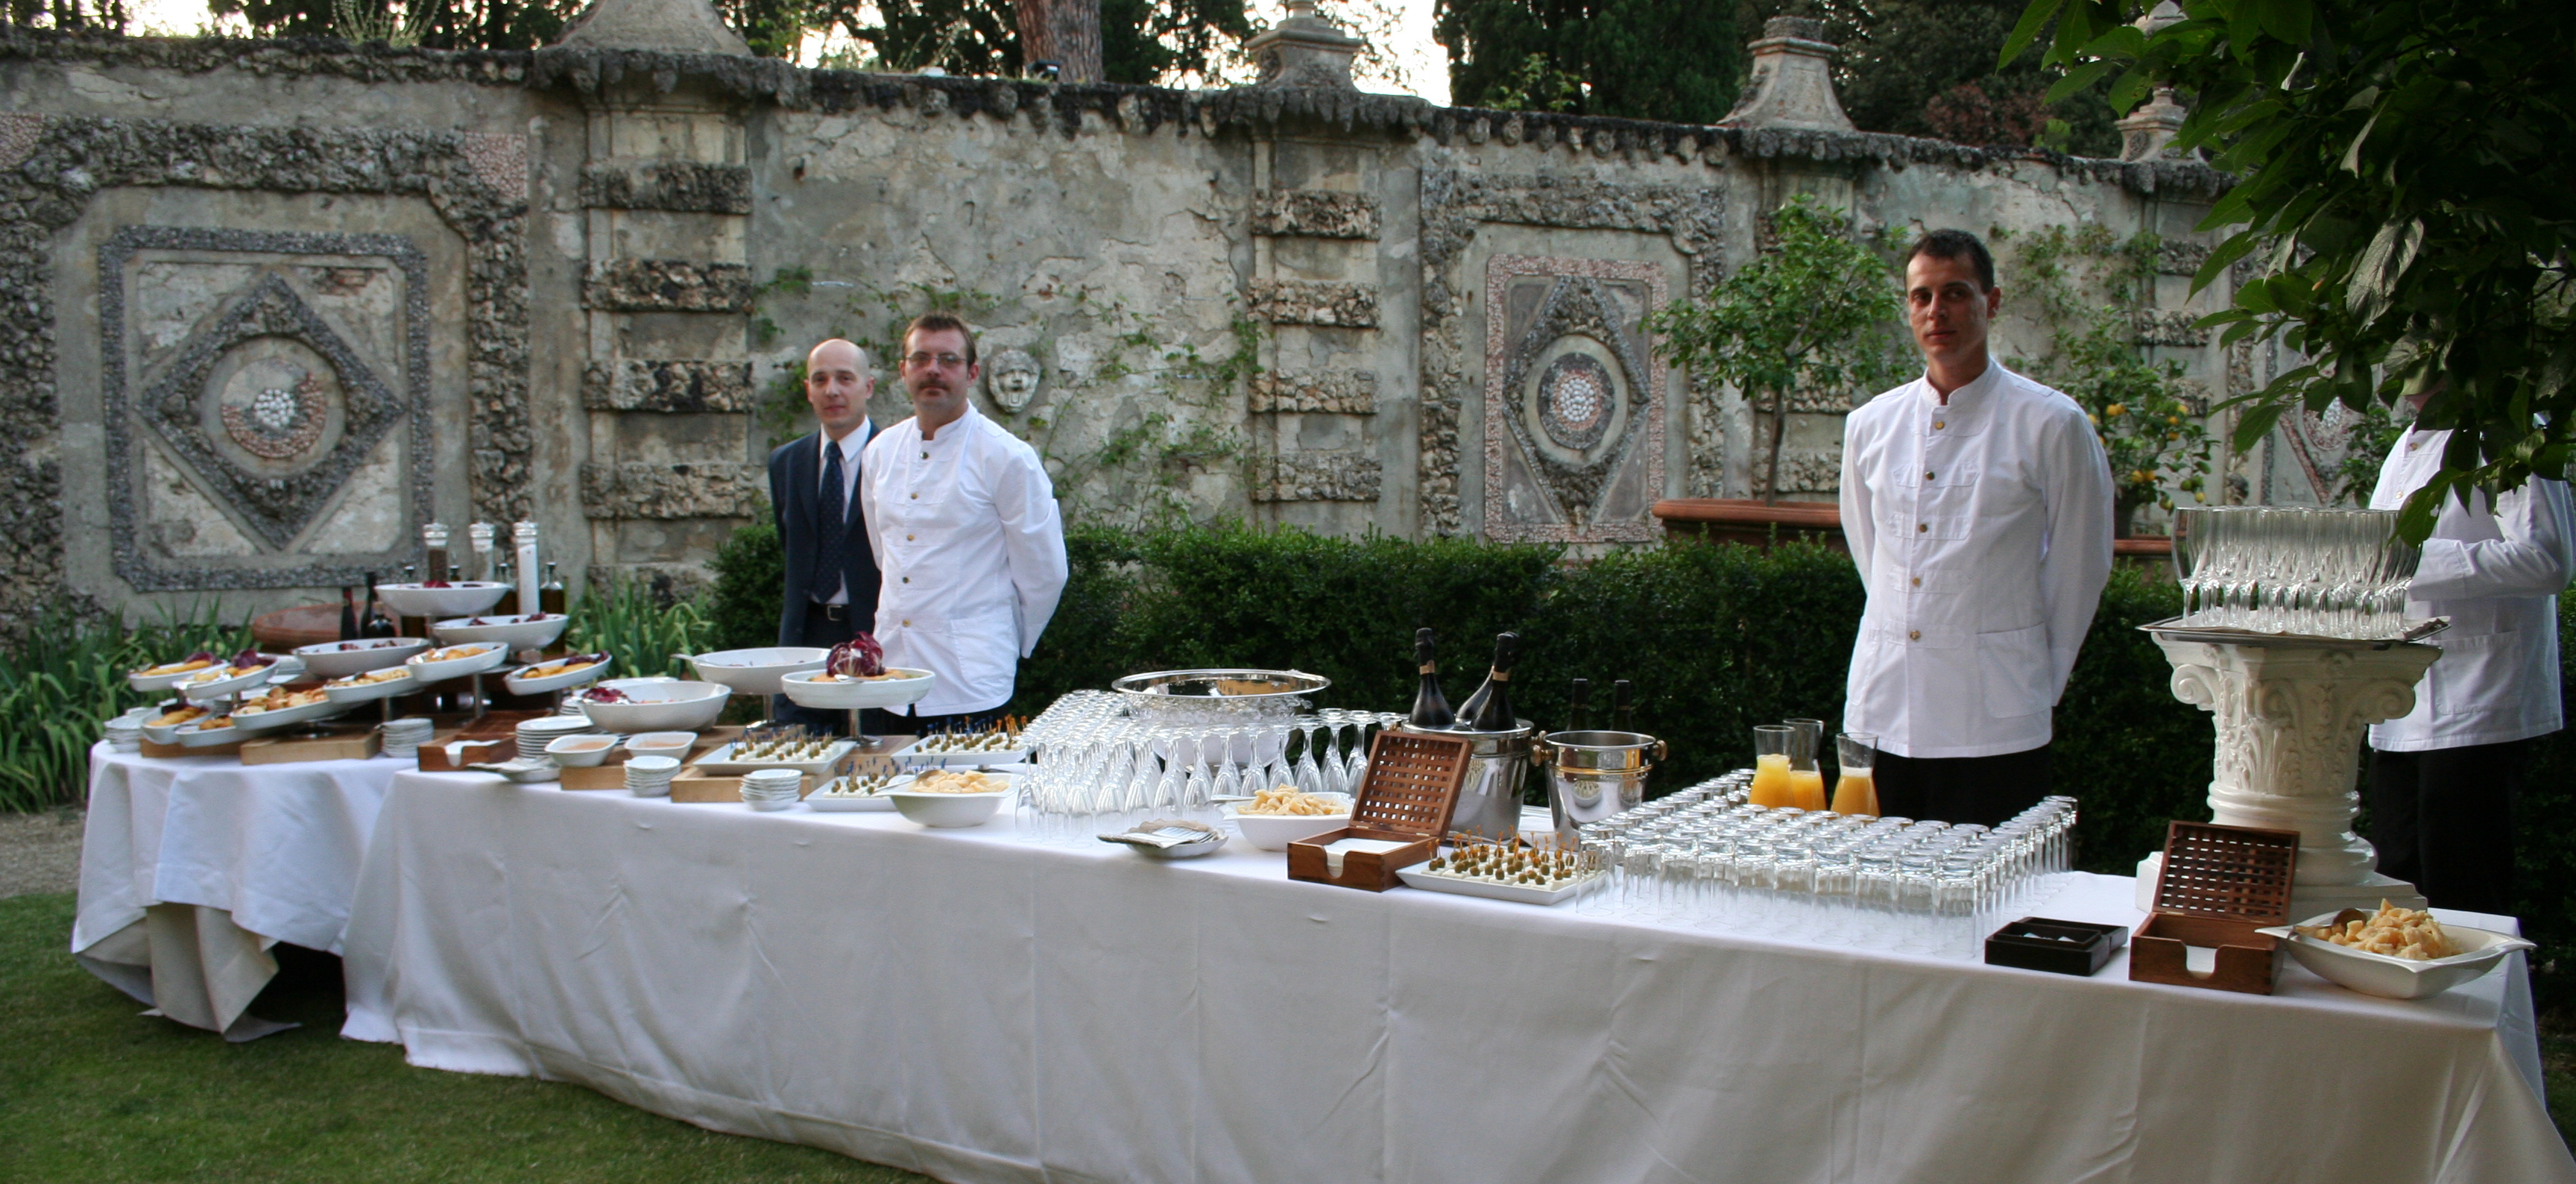 Wedding Buffet In A Tuscan Villa